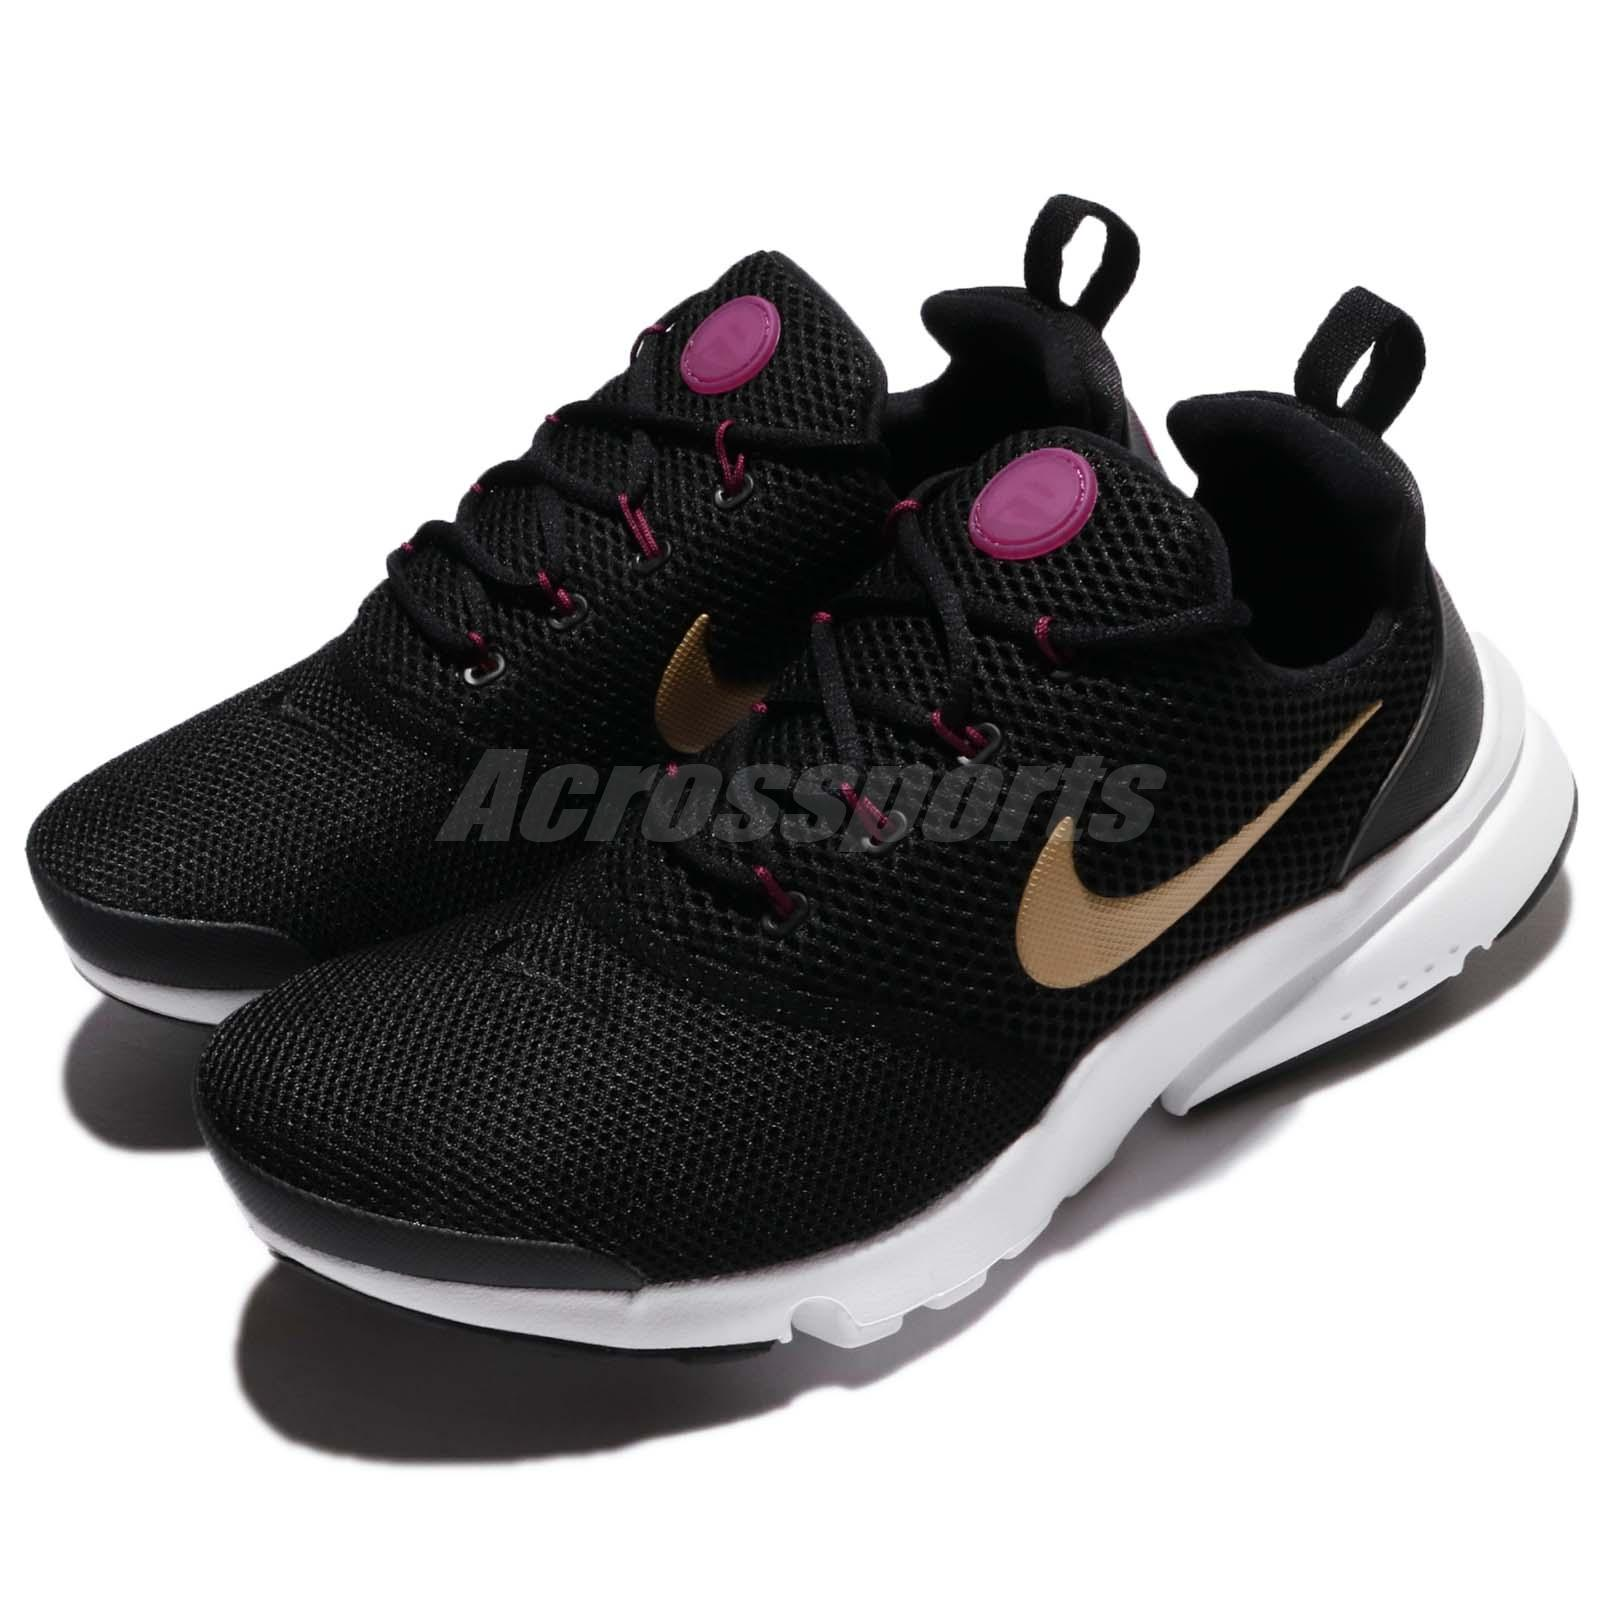 bcb6d99f178 Details about Nike Presto Fly GS Black Metallic Gold White Kid Youth Women  Shoes 913967-004